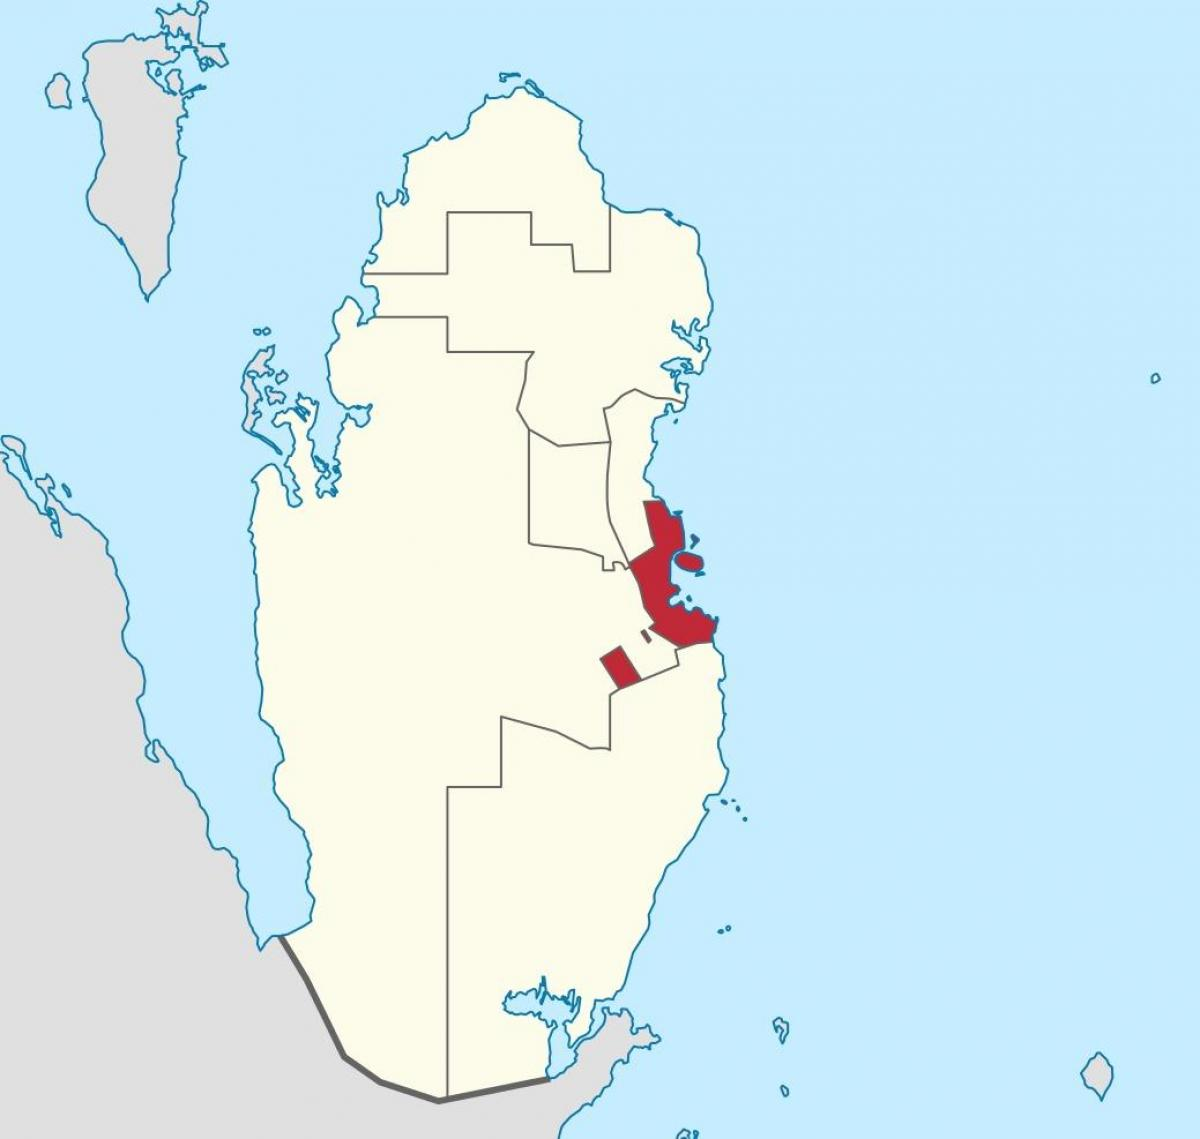 Doha Qatar Location On World Map Map Of Doha Qatar Location On